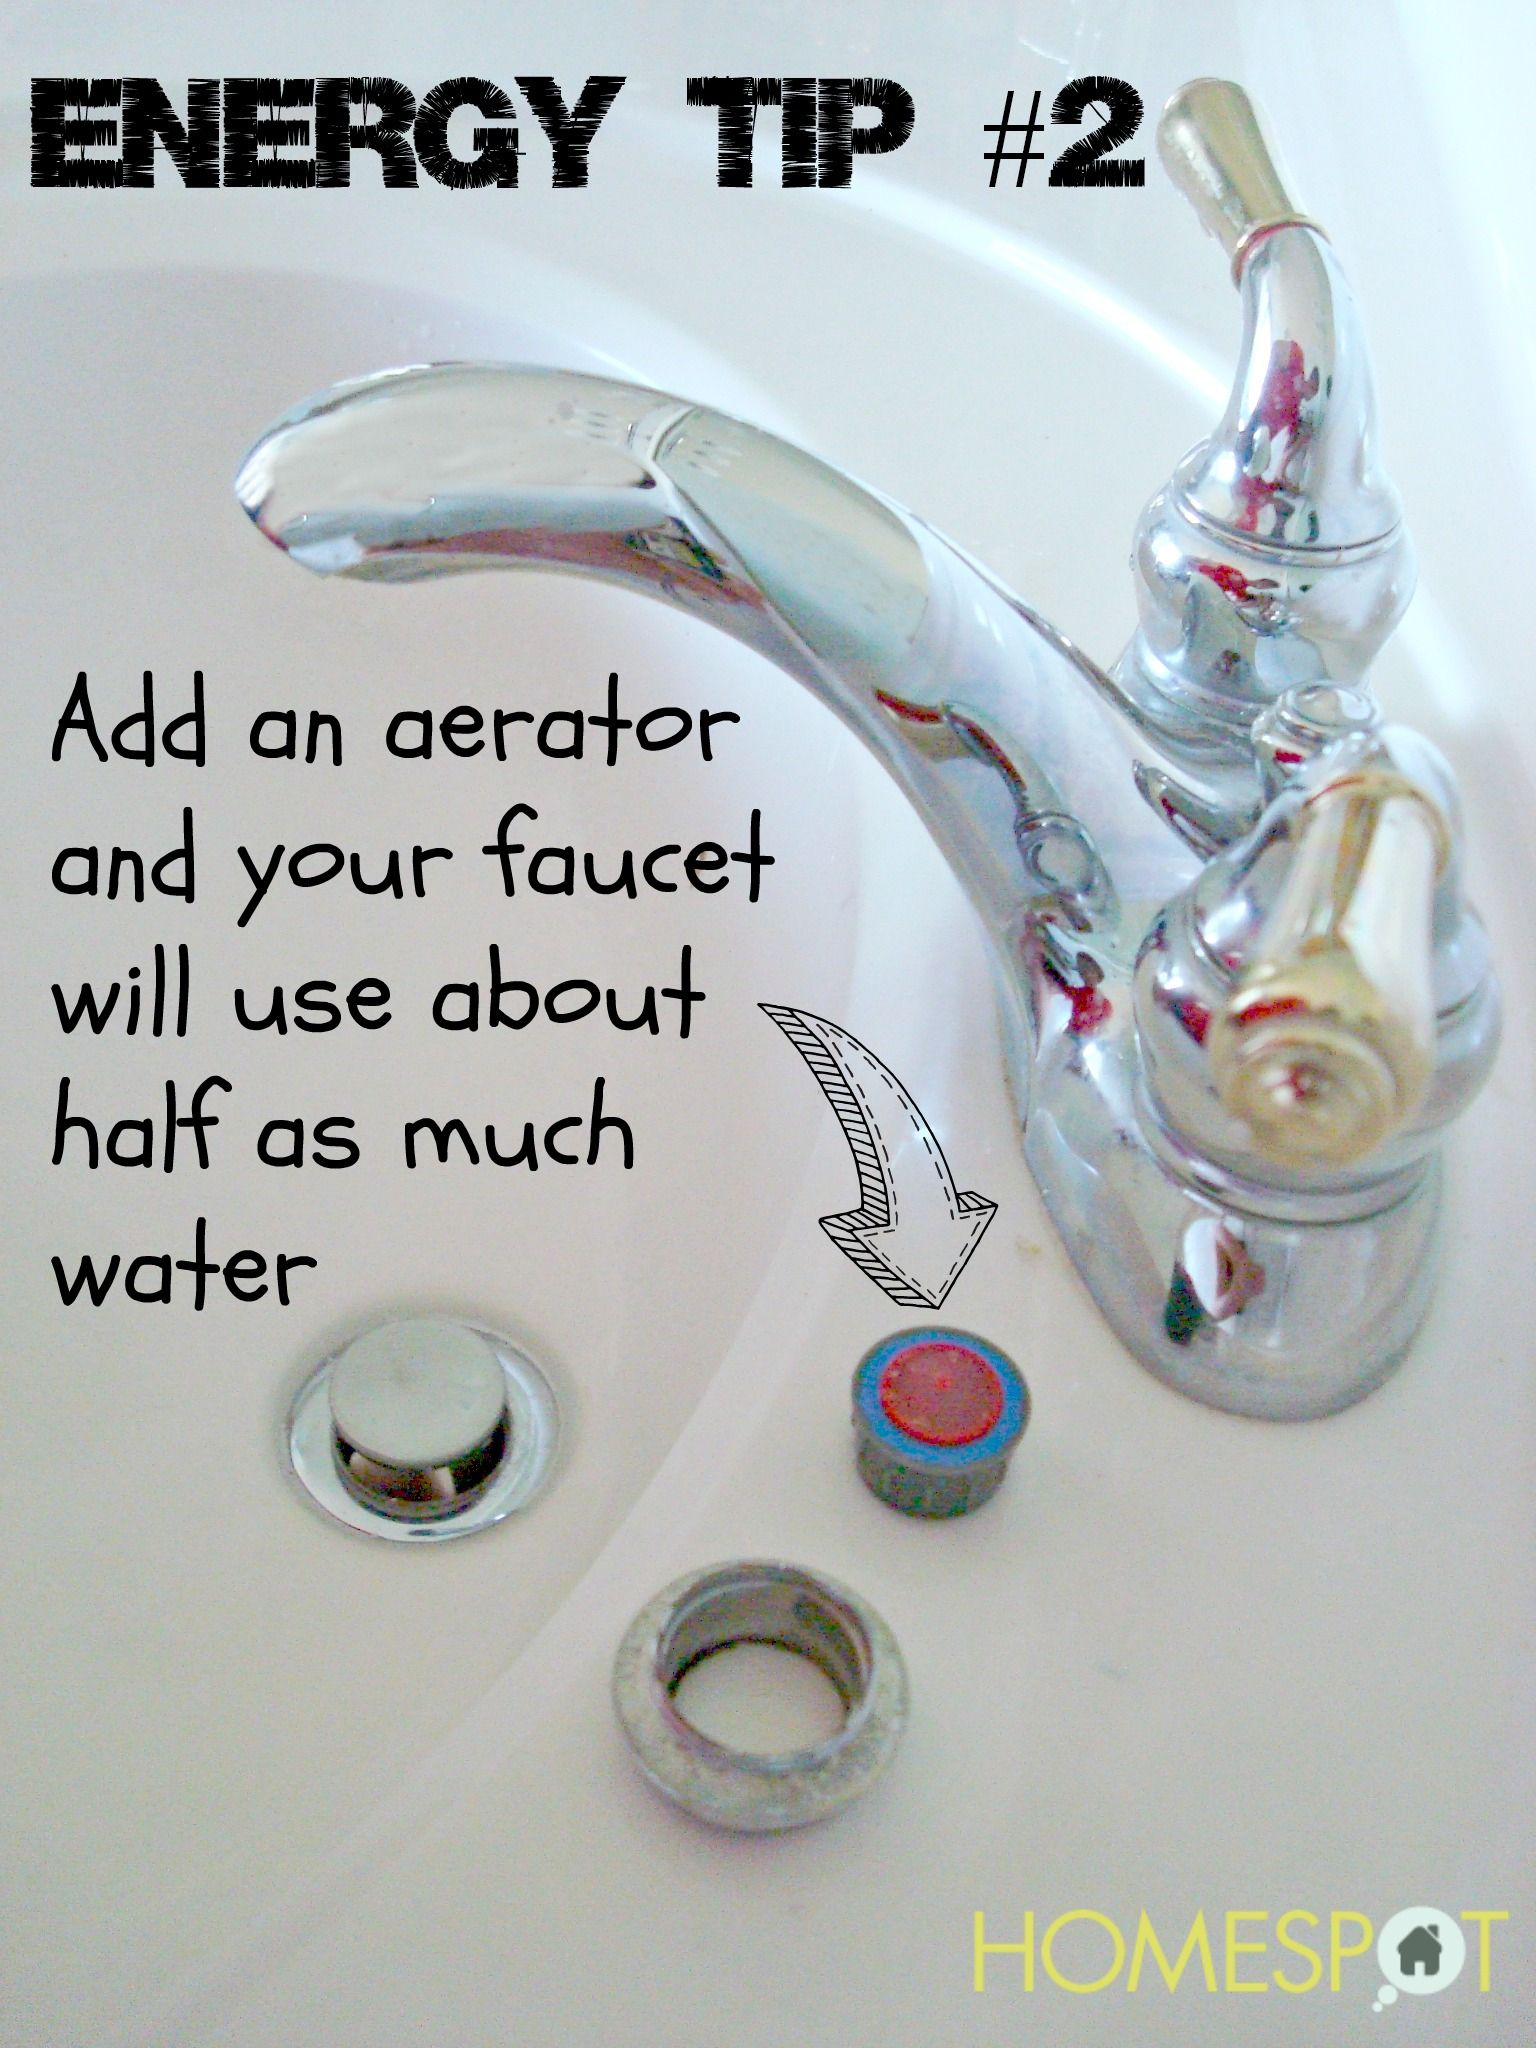 Aerators save 50% on water use from a faucet | DIY Ideas | Pinterest ...